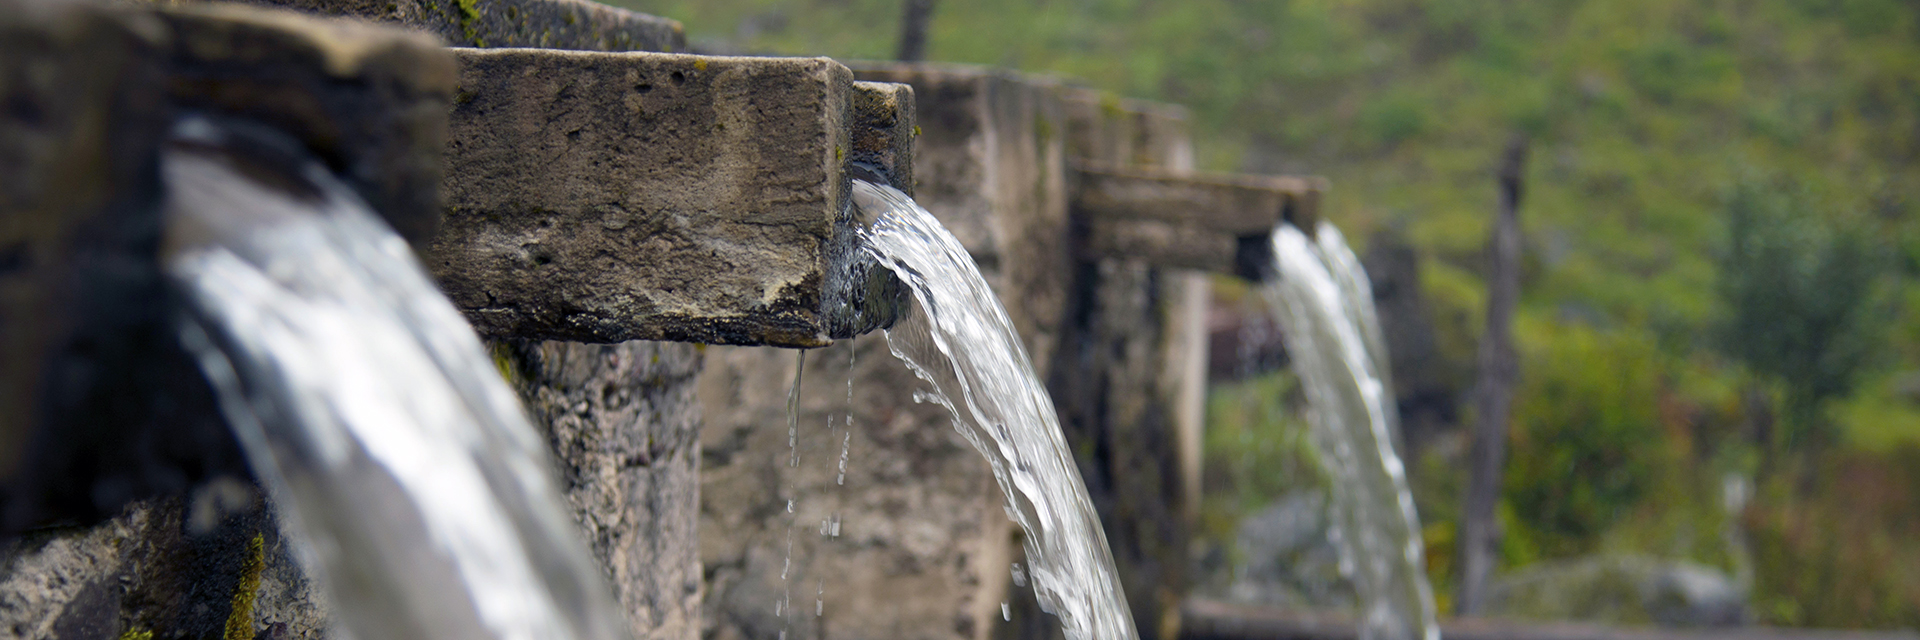 Water-Filtering-Flowing-Spouts-Natural-Spring-Ecological-Biosystems-Engineering-sm